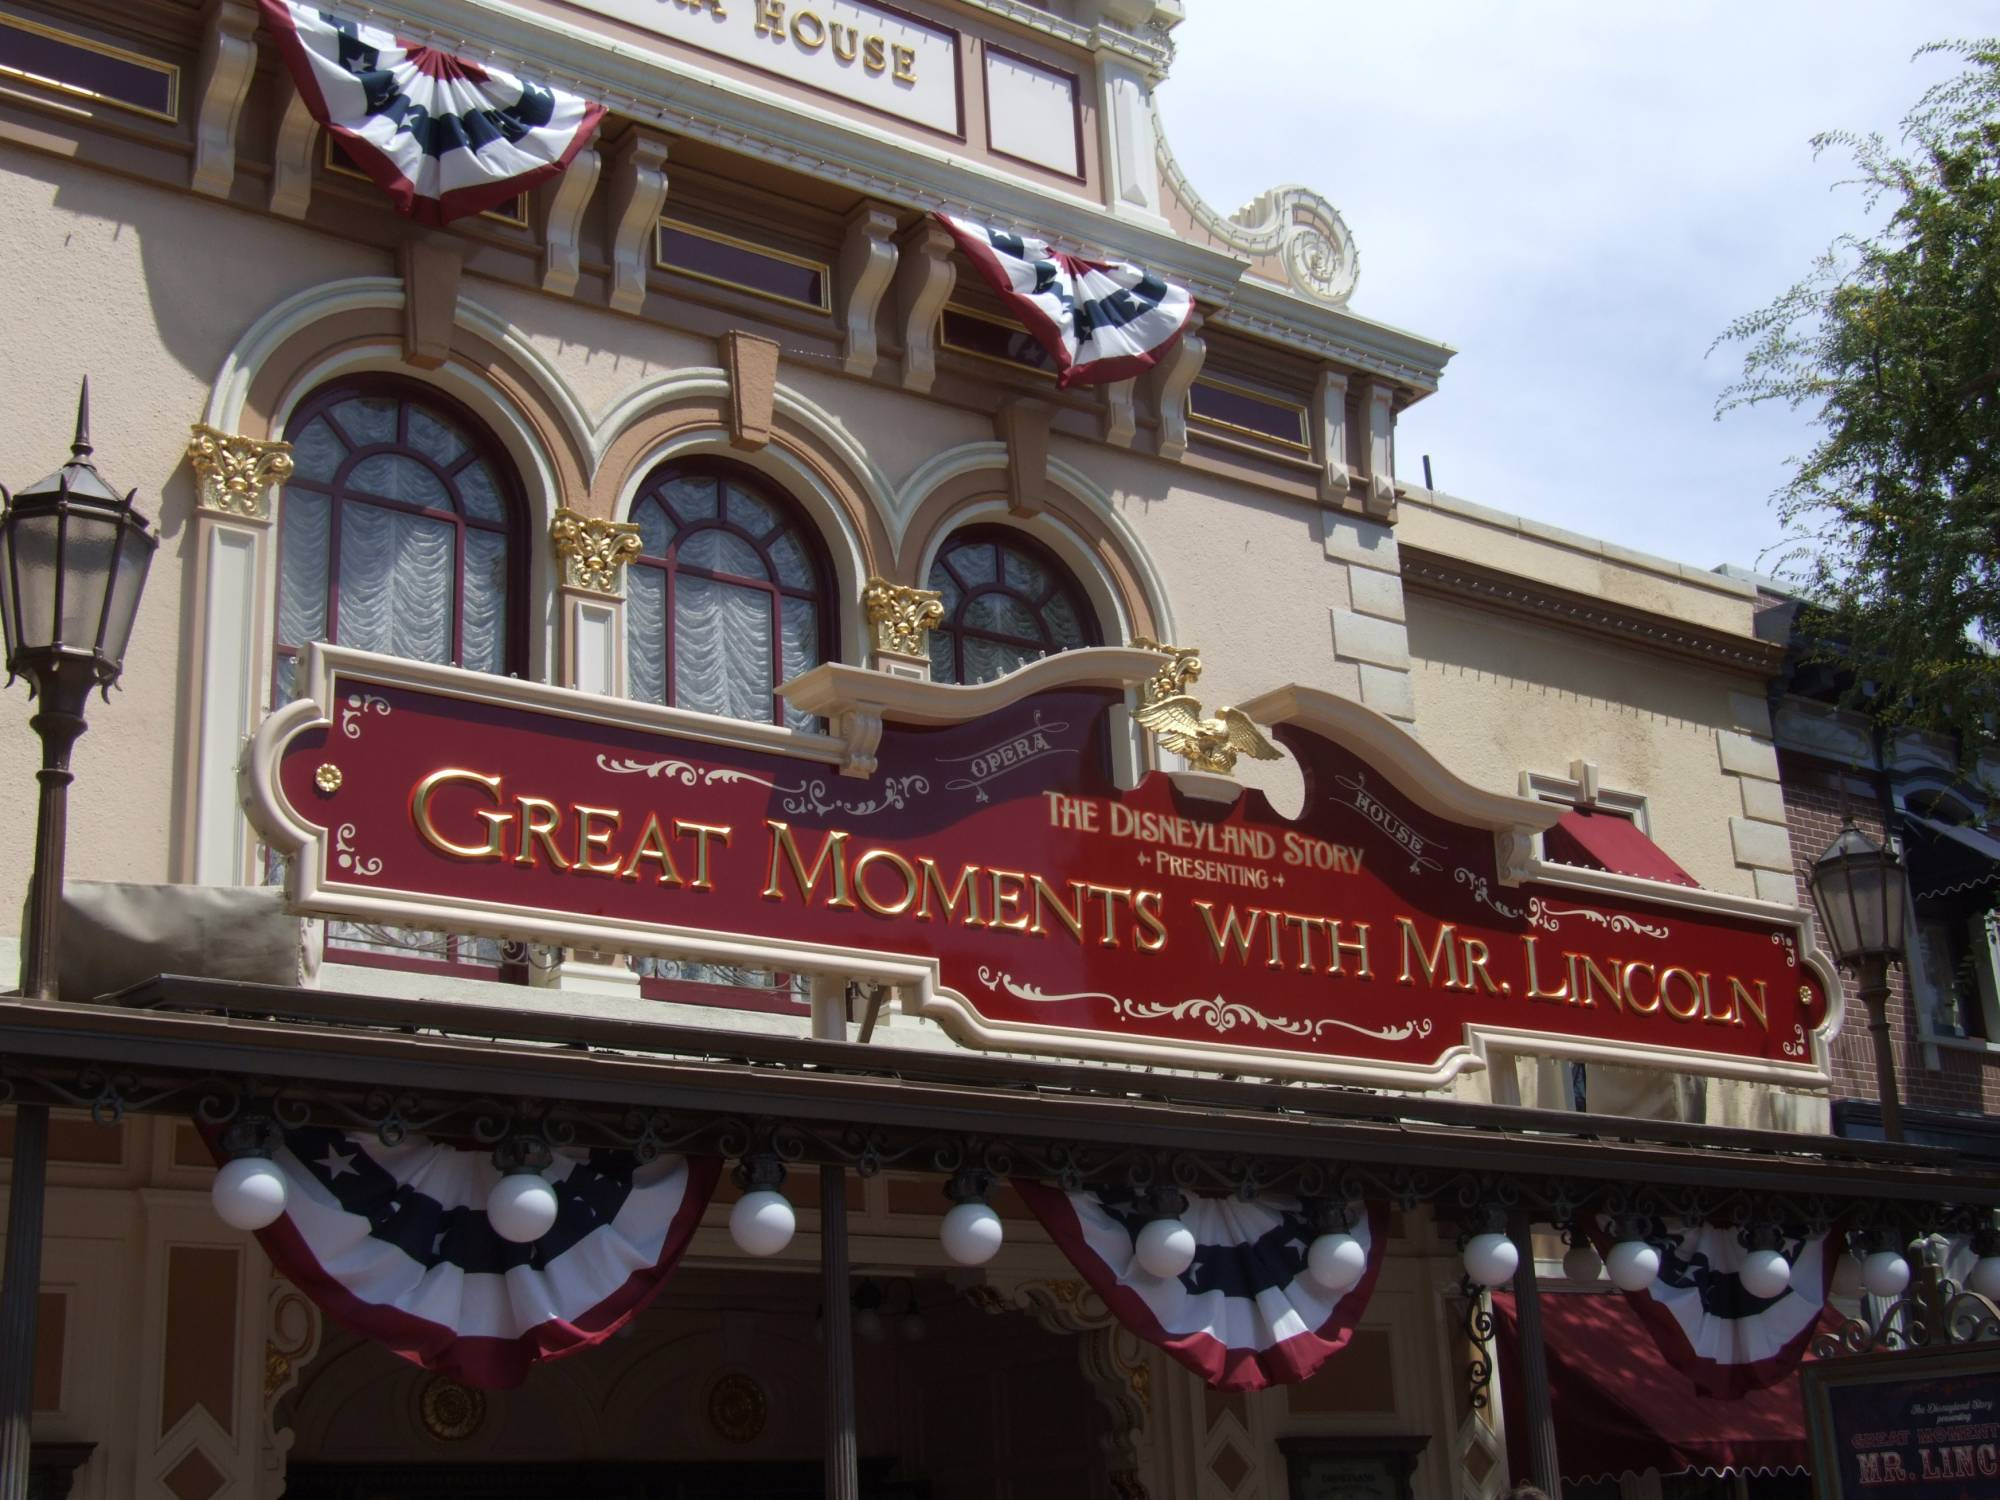 Disneyland Opera House Marquee -Great Moments